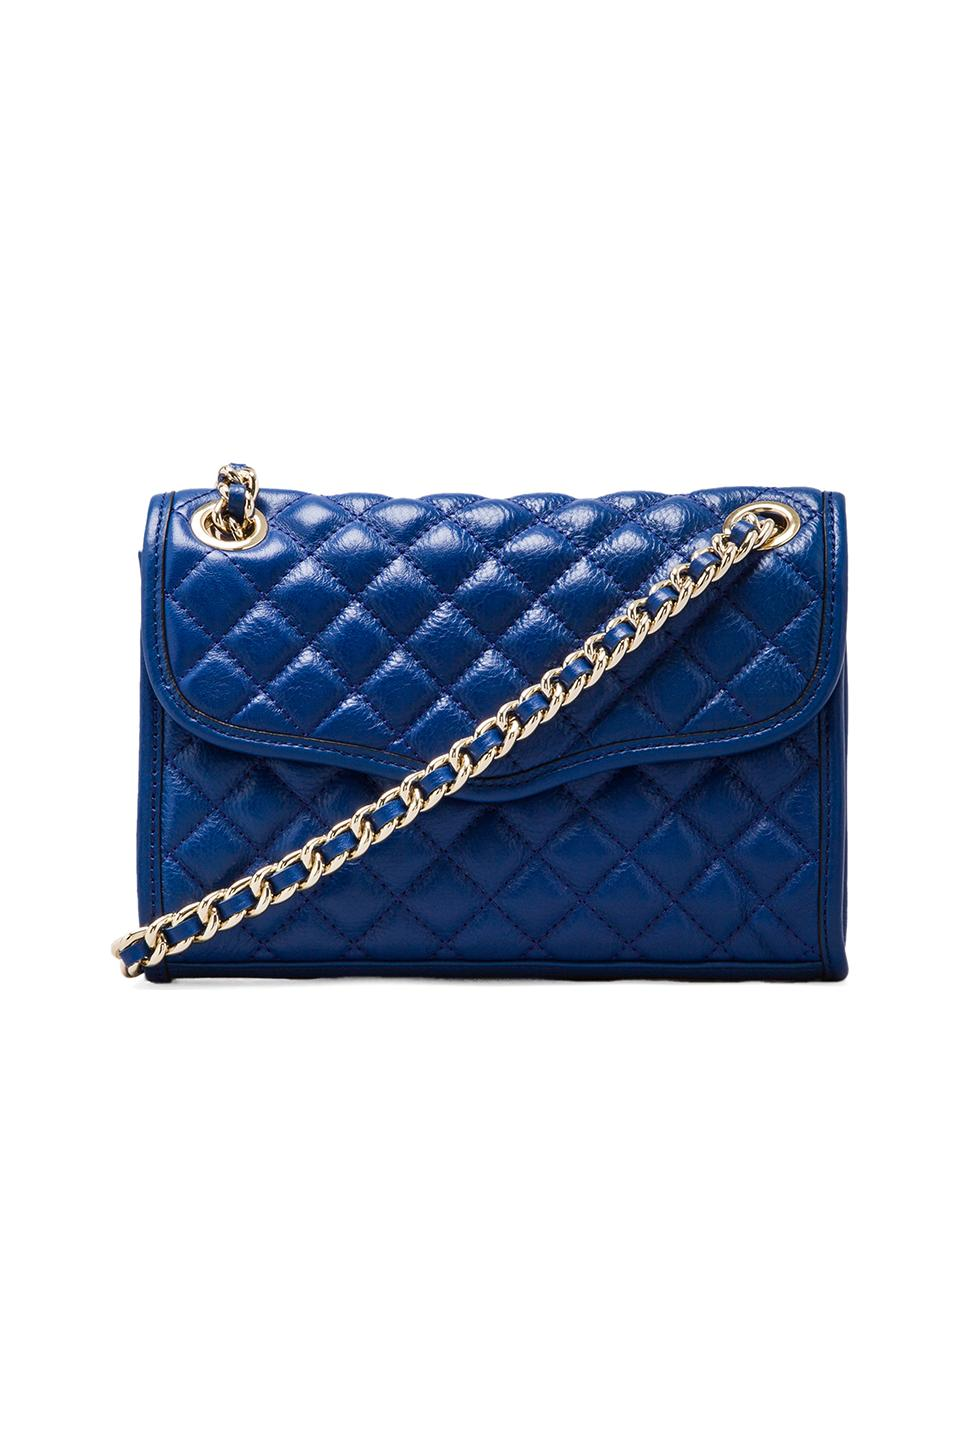 Rebecca Minkoff Mini Affair in Electric Blue